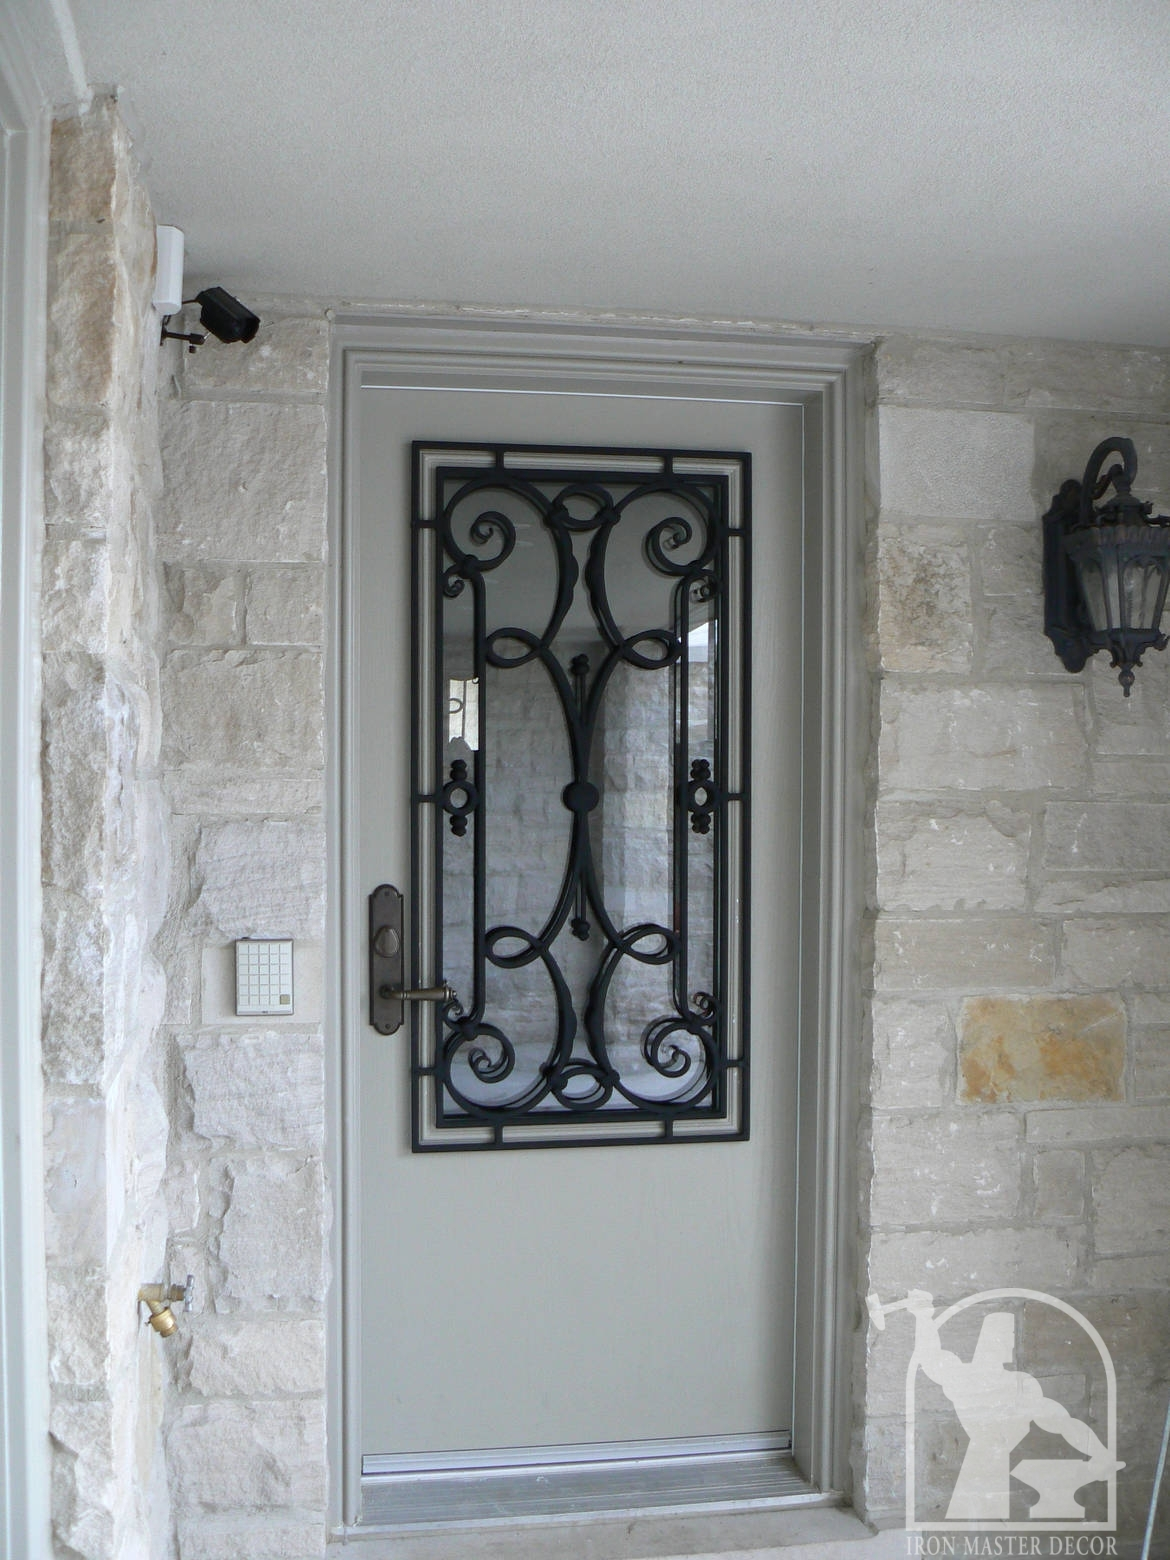 Wrought iron front door photo gallery iron master wrought iron door grill insert 6 rubansaba